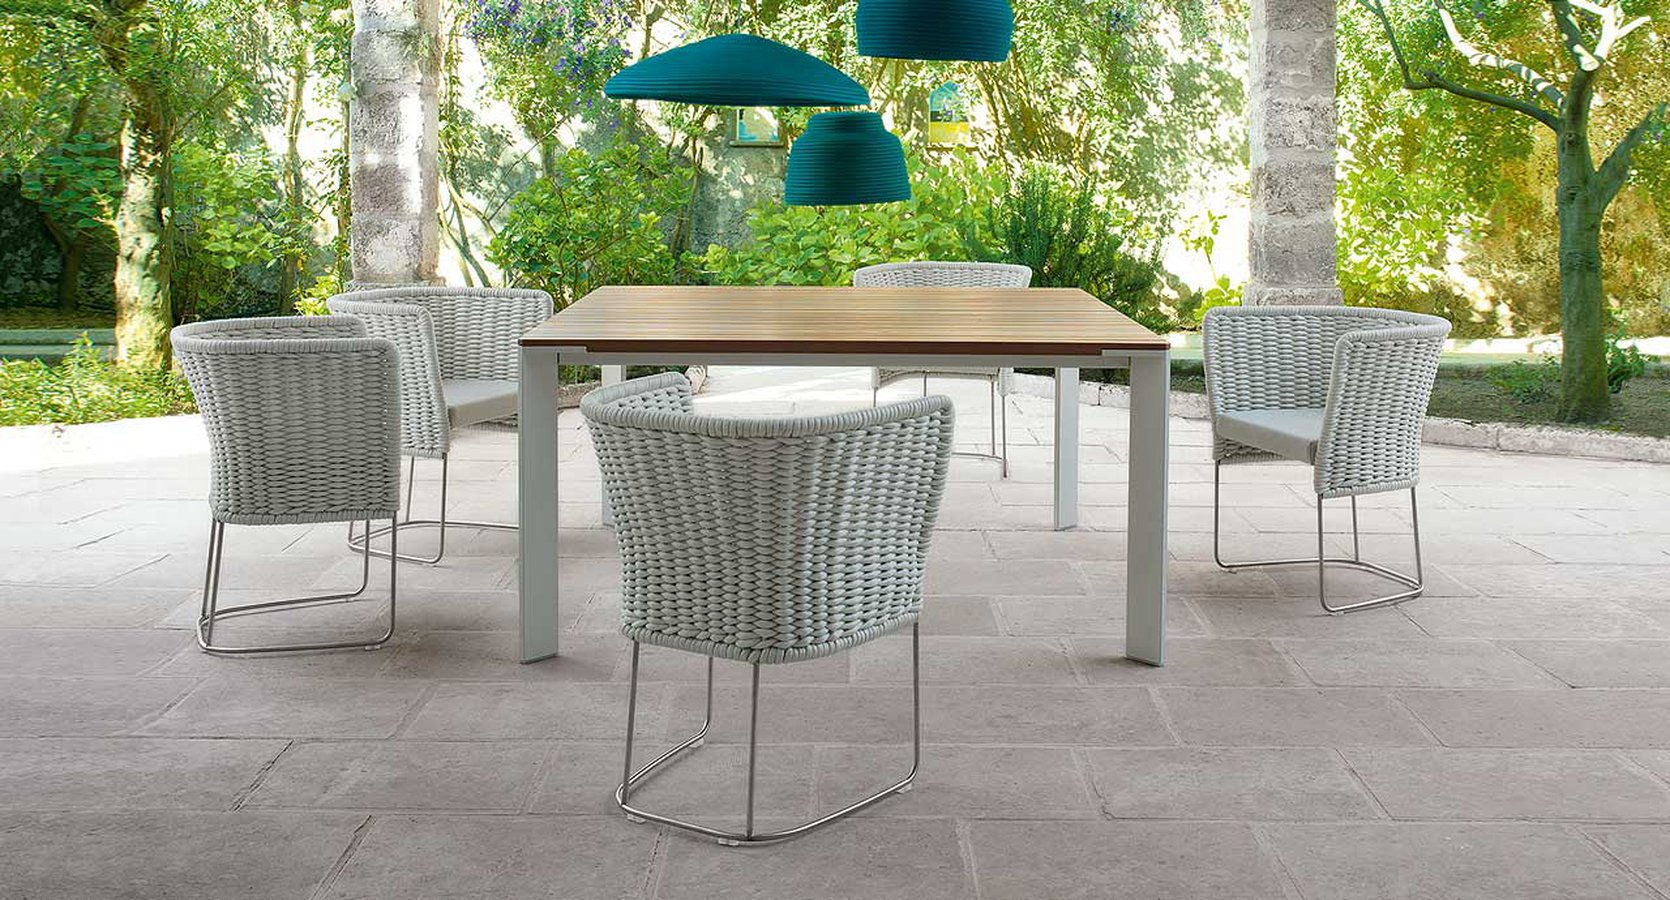 Comfort And Style Combine To Create Ami An Armchair Designed For Outdoor Living The Structure Is Made Of Stainless Steel Upholsteries Weaves